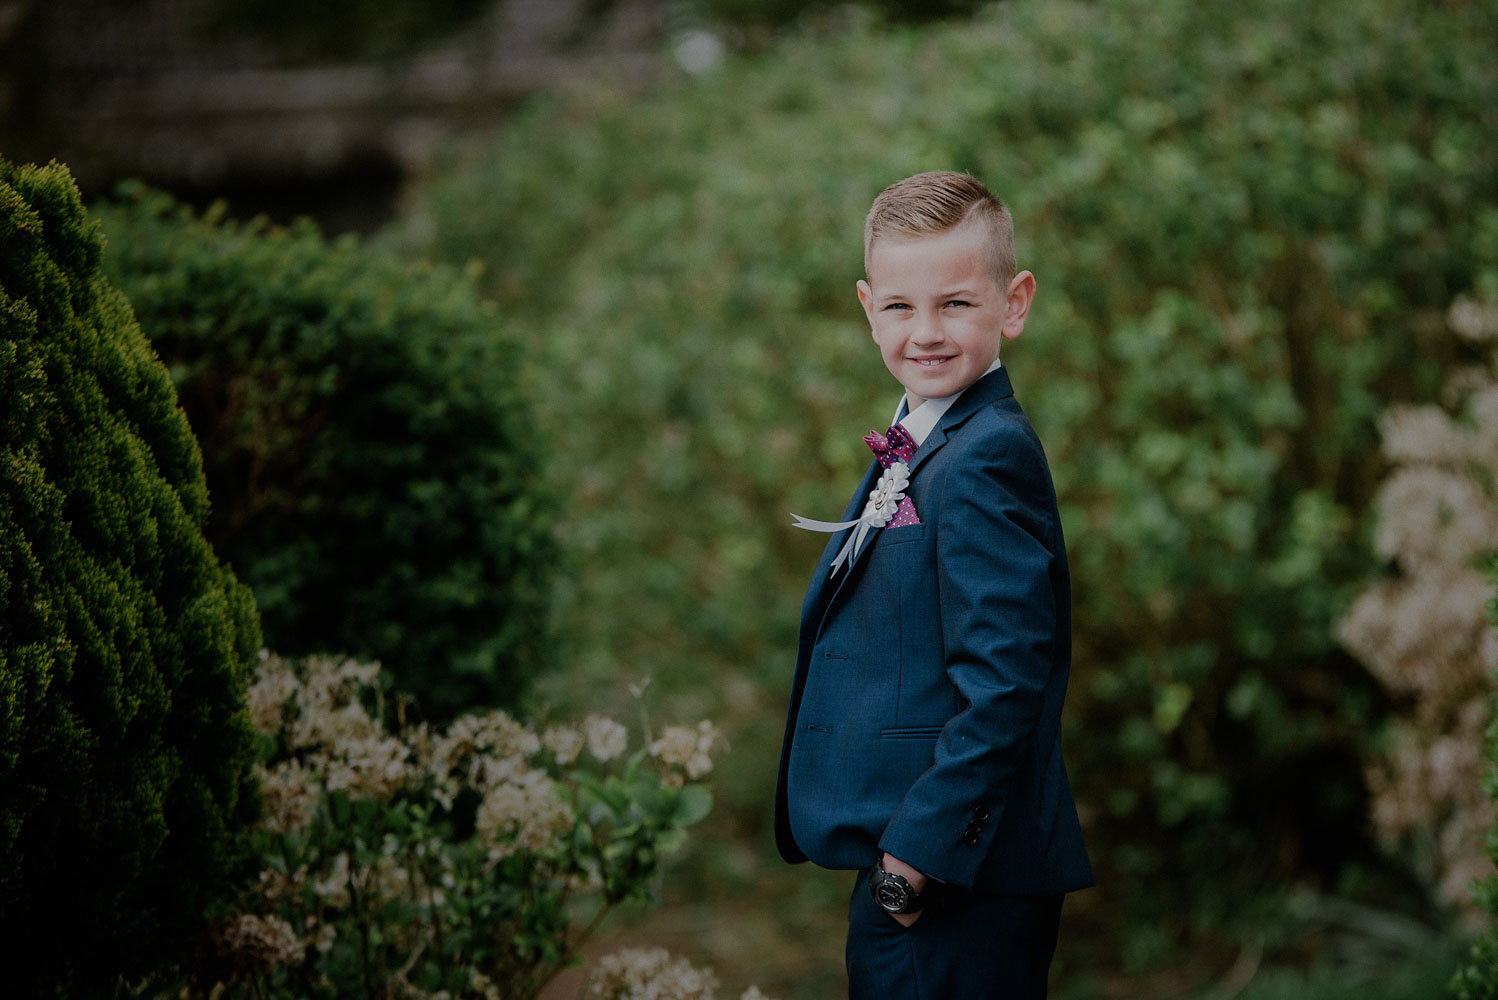 Jakub and his Communion Day 05.05.18